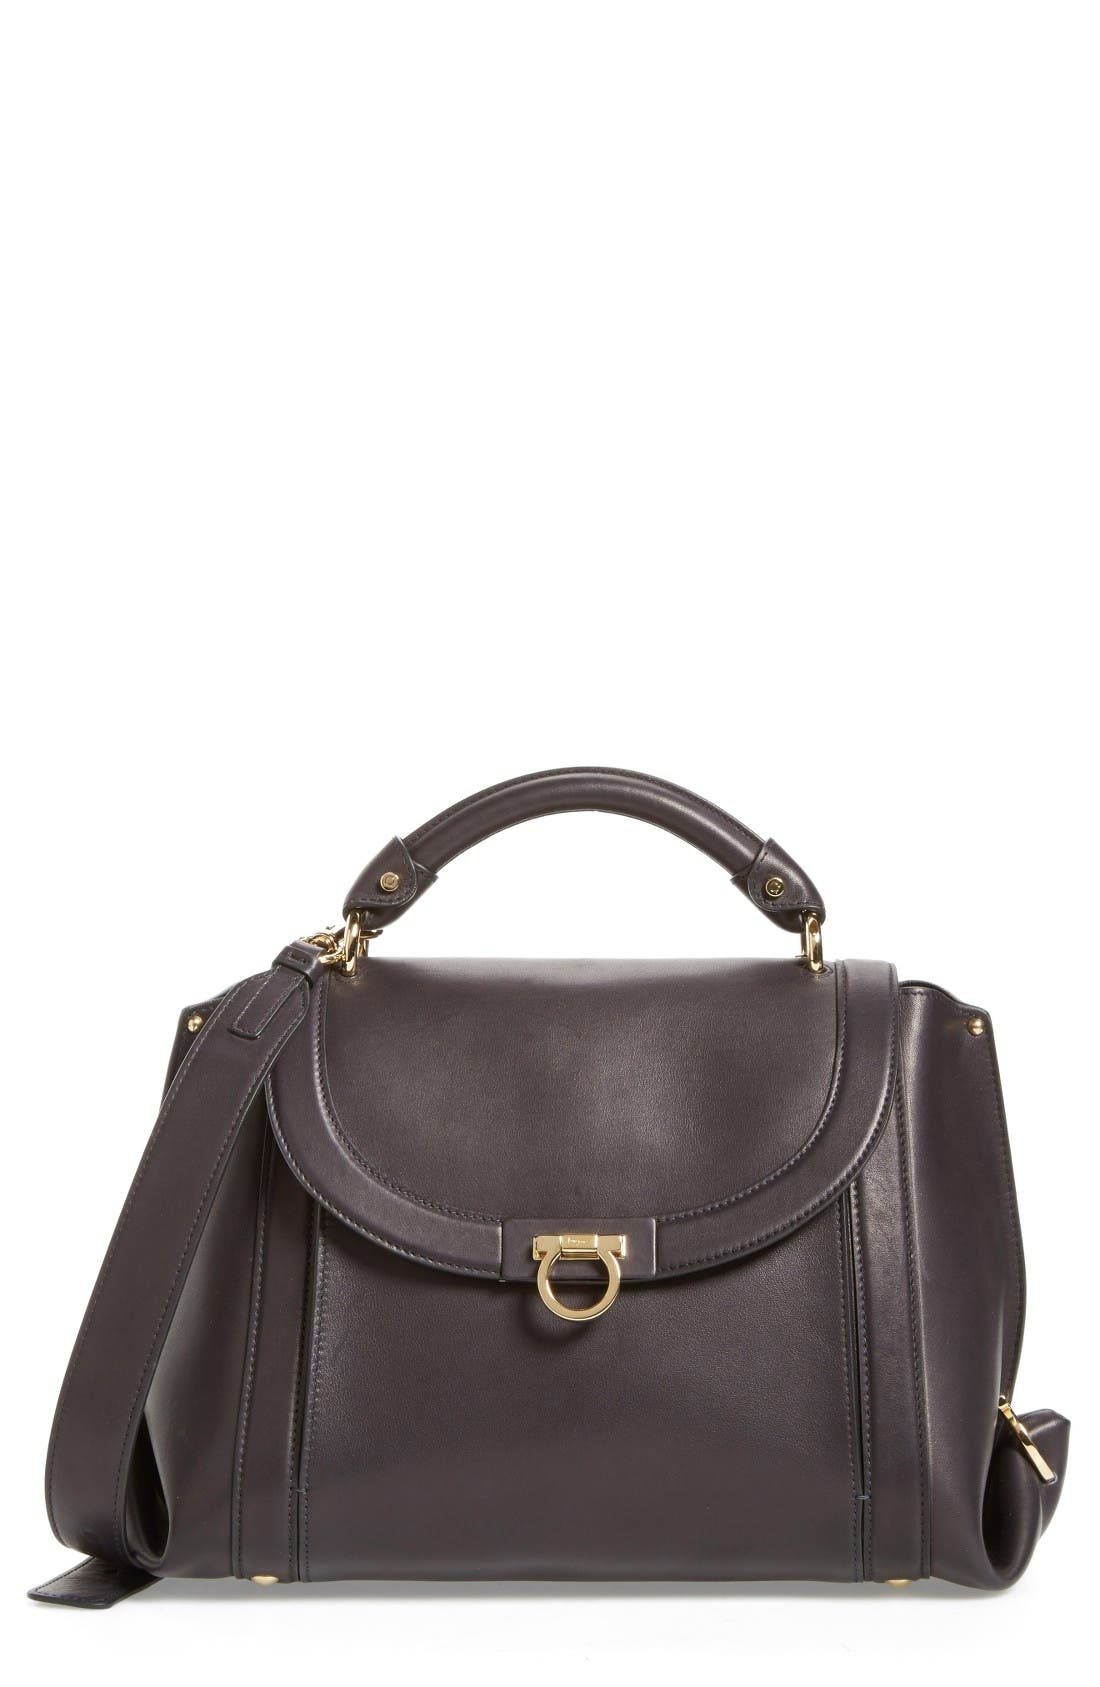 Alternate Image 1 Selected - Salvatore Ferragamo Medium Leather Satchel